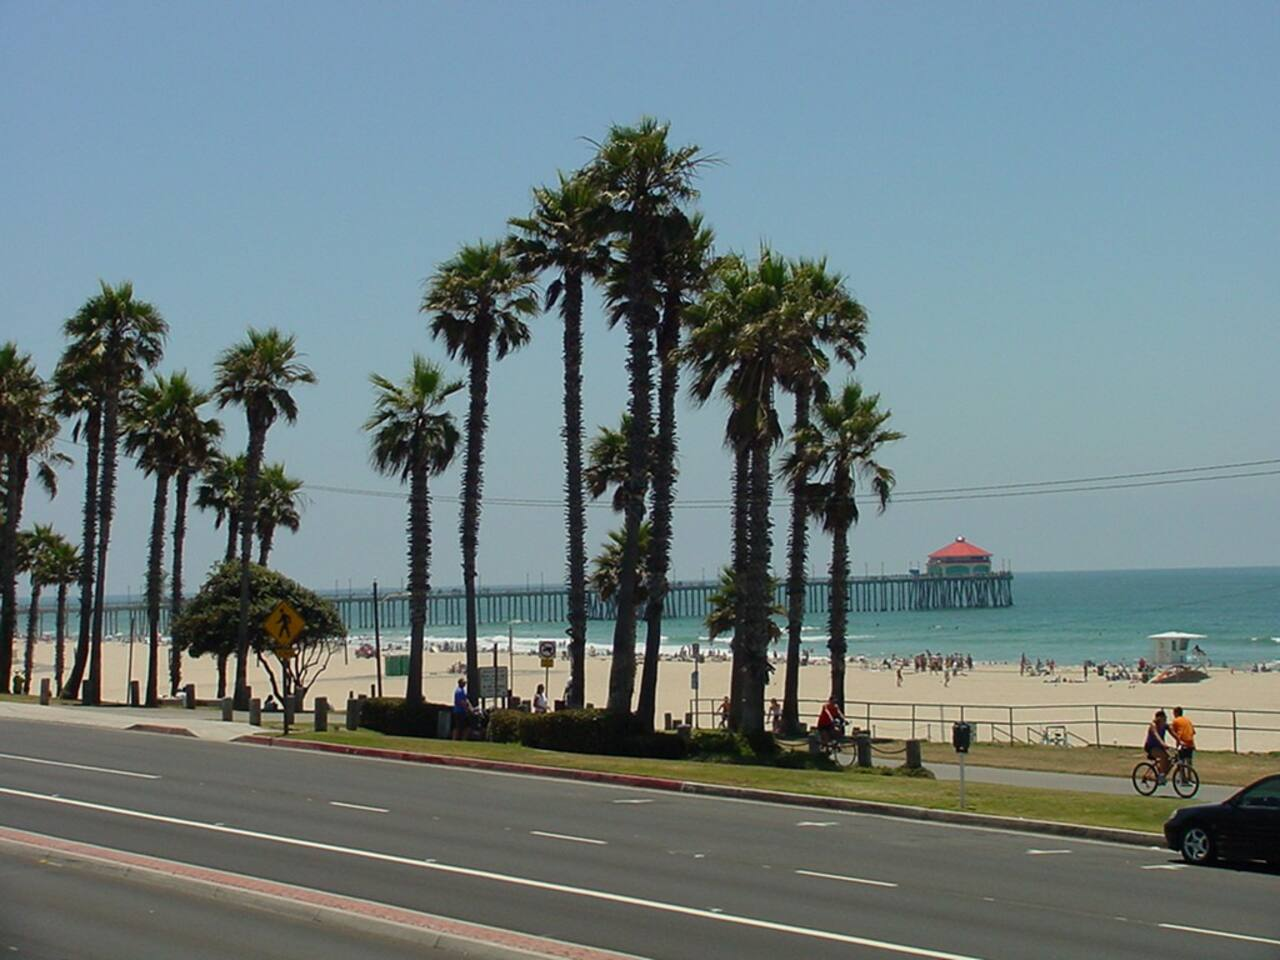 The Apartment is a five minute walk down main street to this beautiful and stunning beach setting!